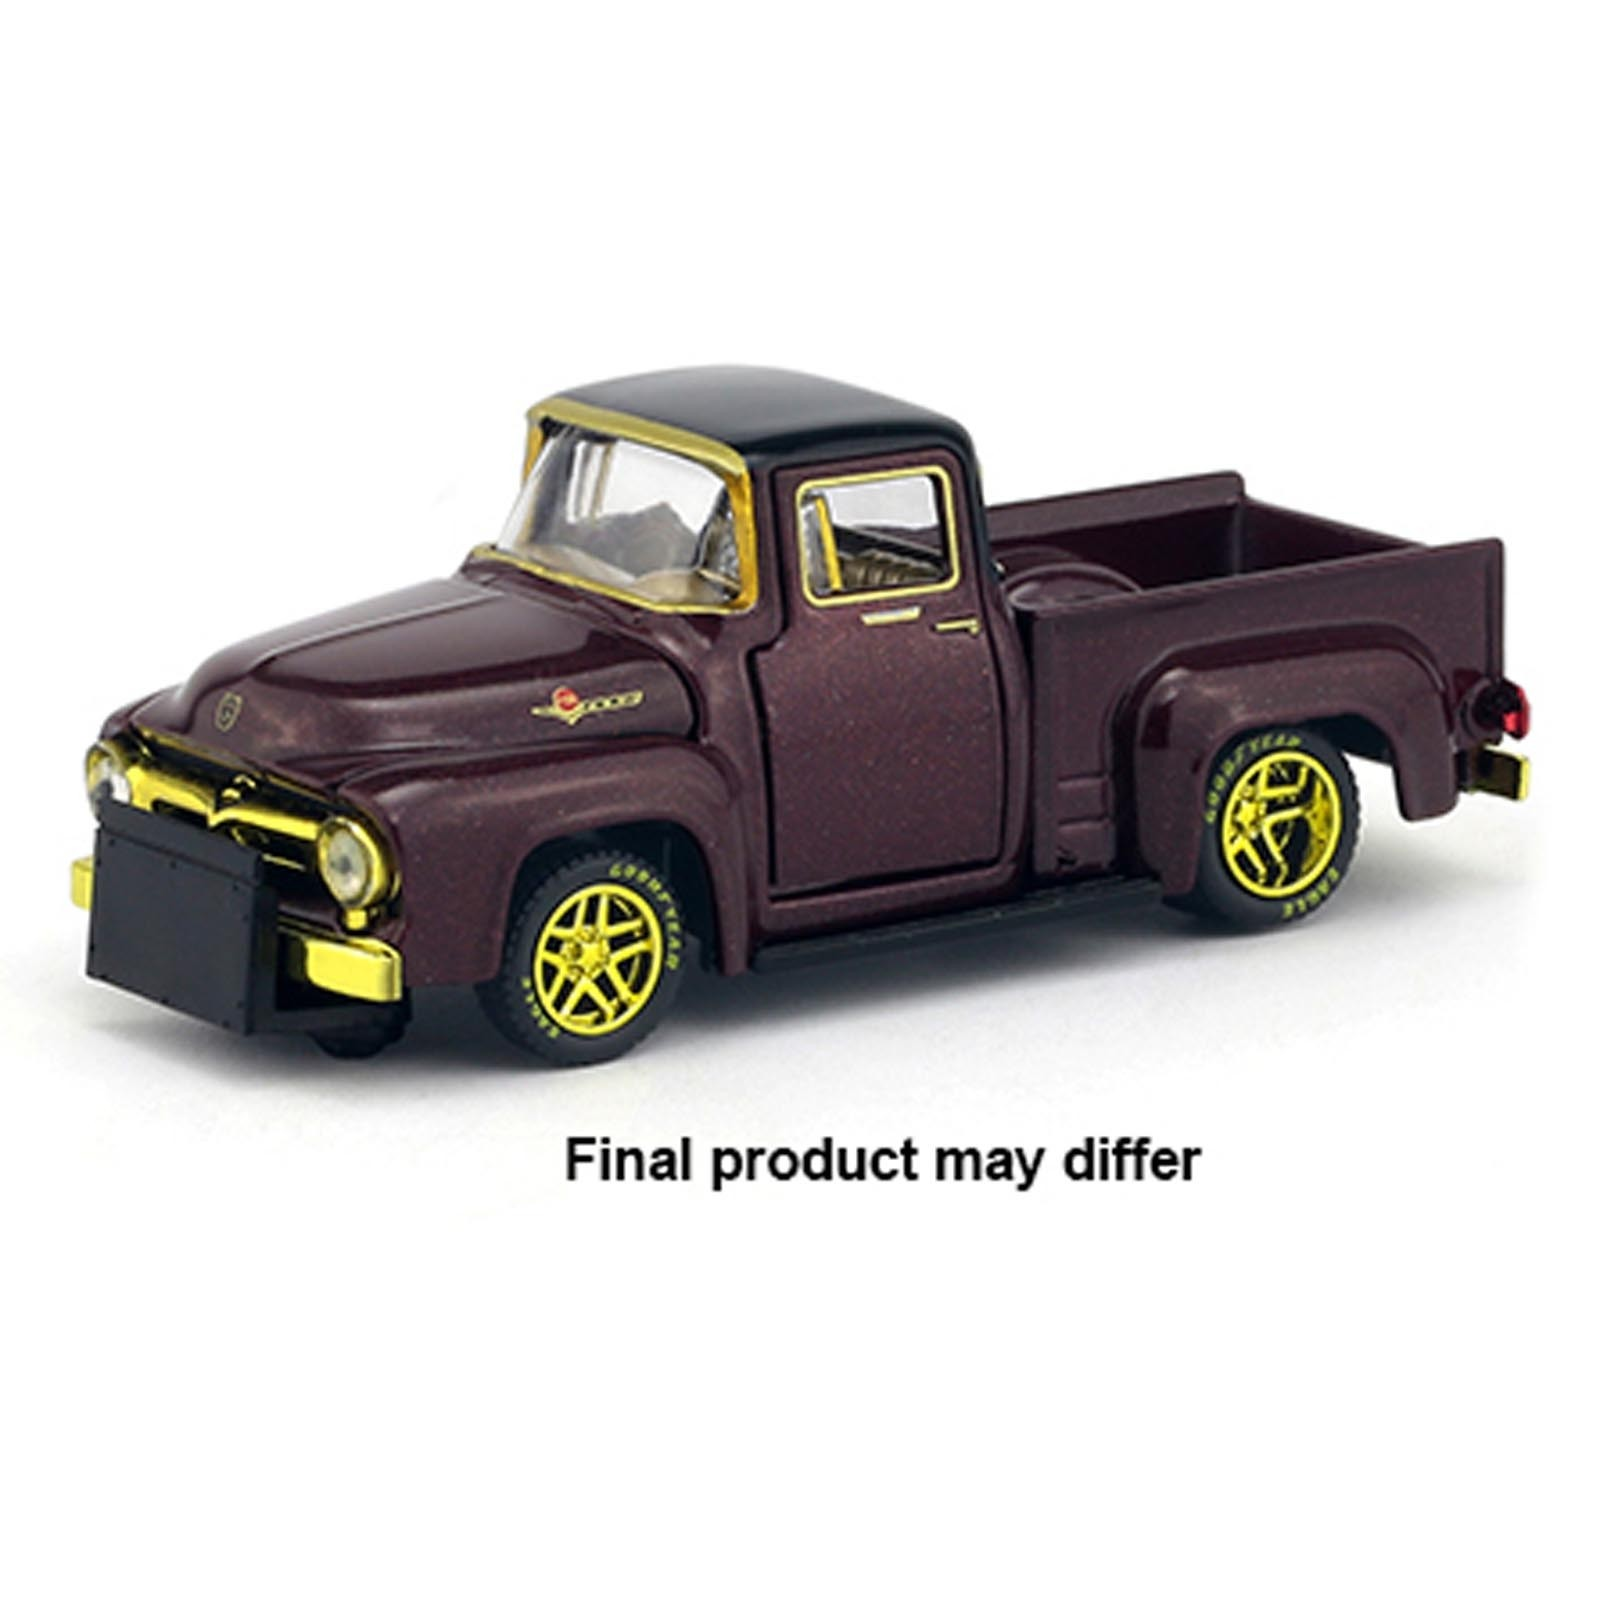 Miniatura - 1:64 - ​​​​​​1956 Ford  F-100 Truck Chase - Model Kit R25 - M2 Machines